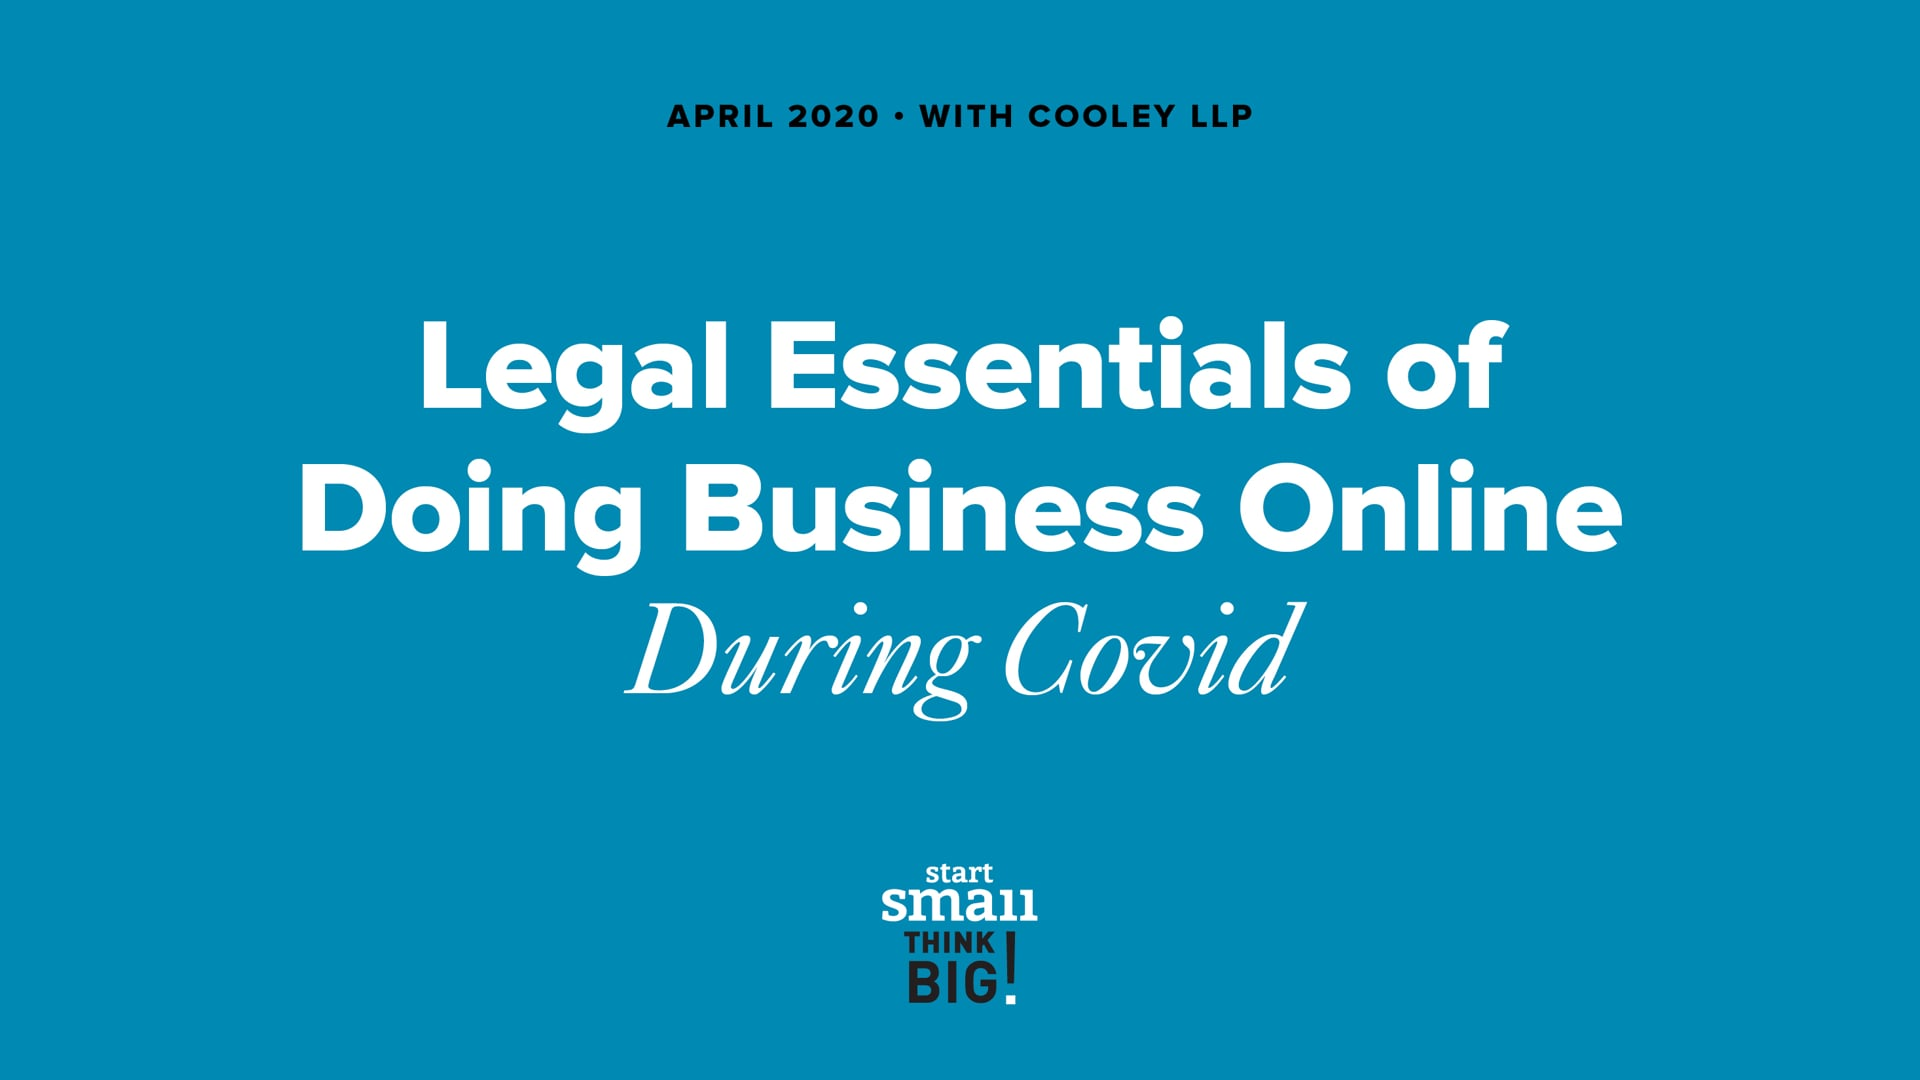 Legal Essentials of Doing Business Online in the COVID-19 Pandemic